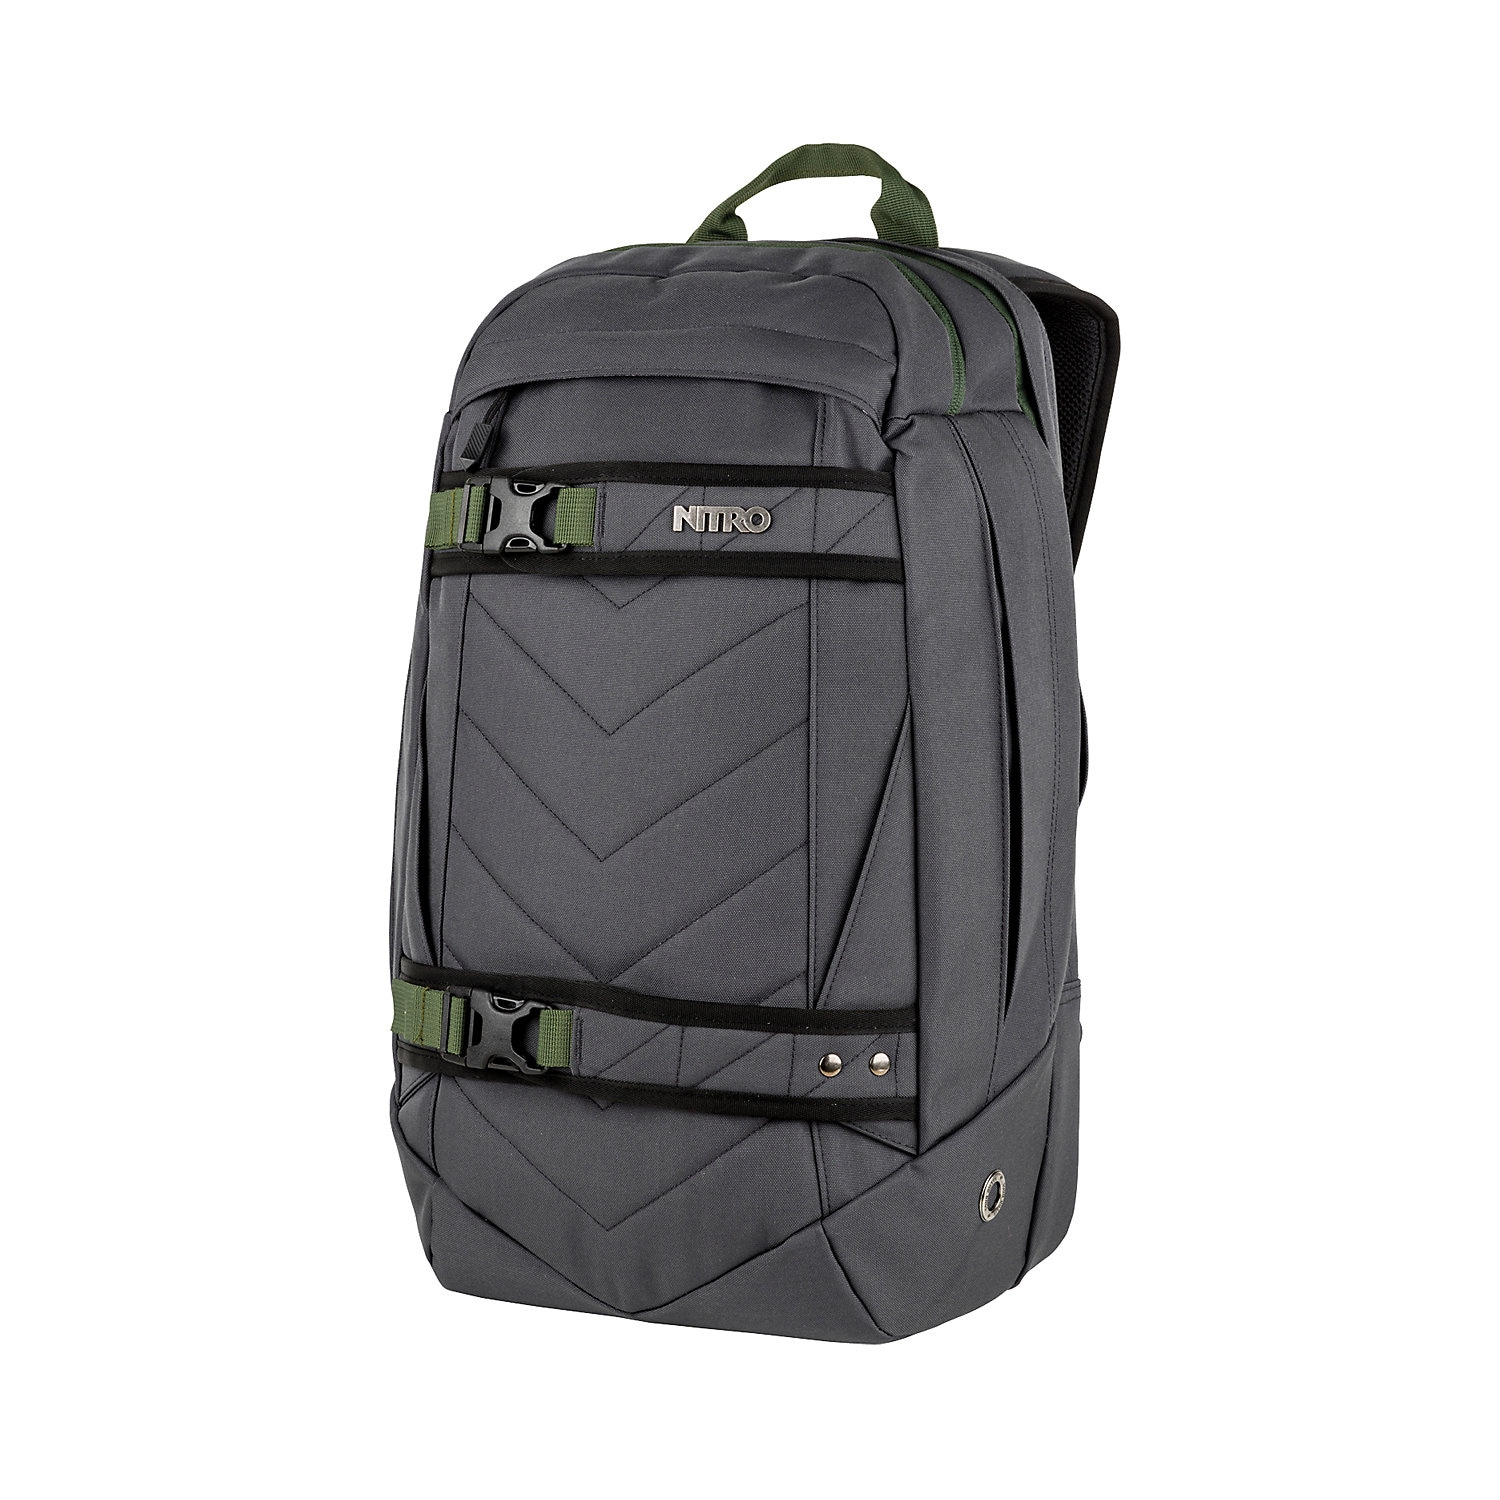 "Nitro Rucksack Aerial 15"" L Daypack Collection 27 l"